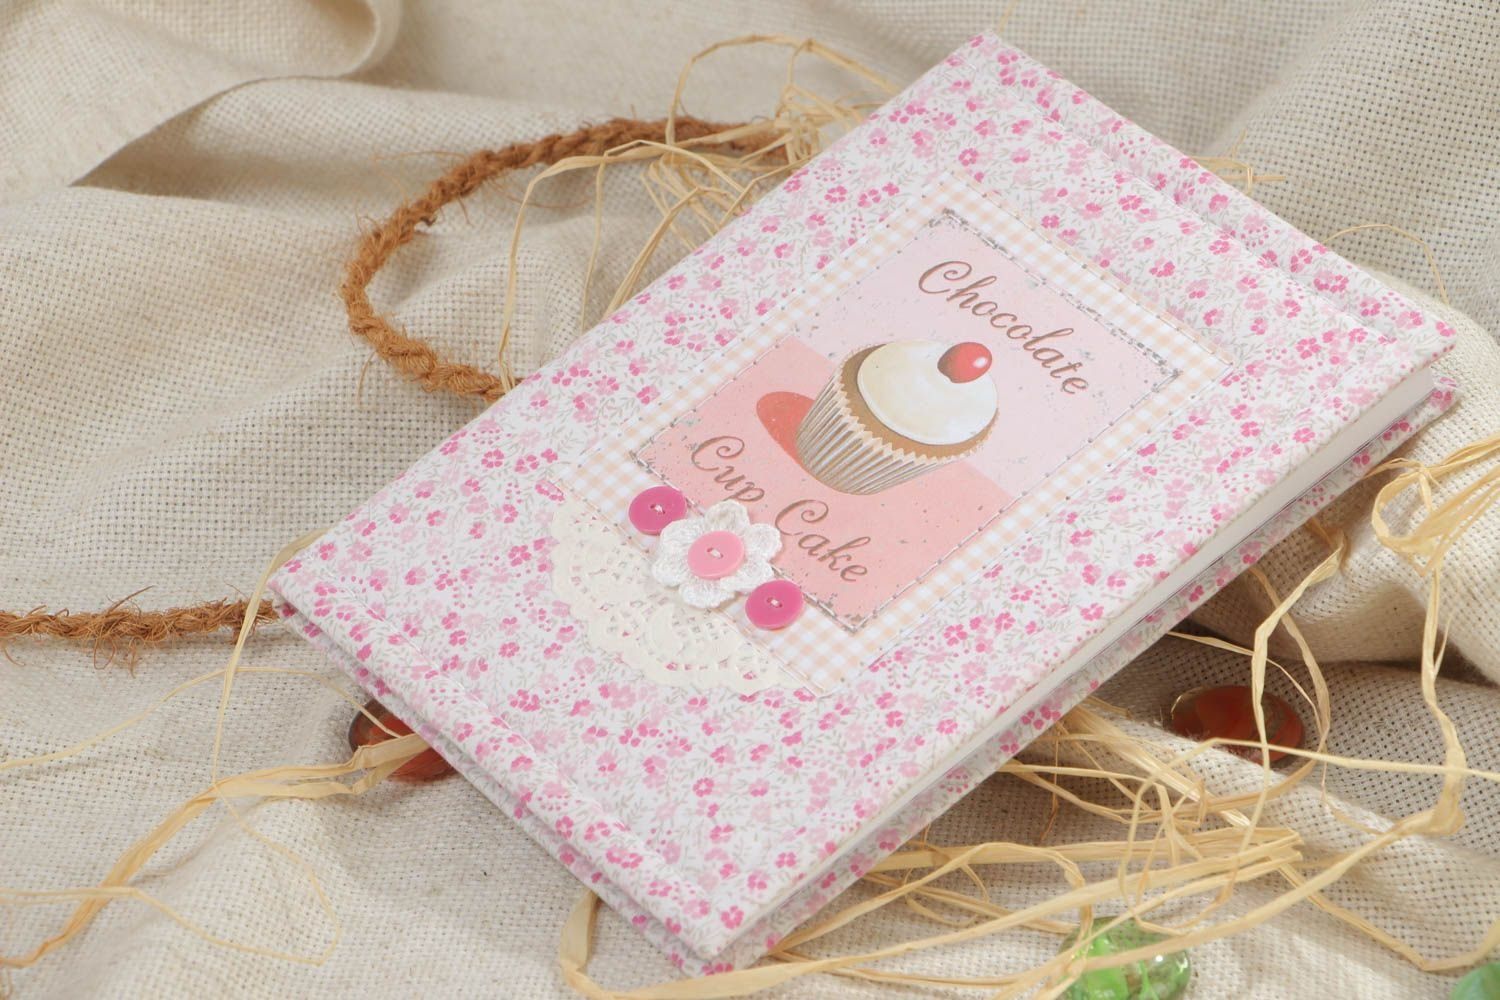 Handmade Designer Copybook With A Pink Cotton Cover For A Girl